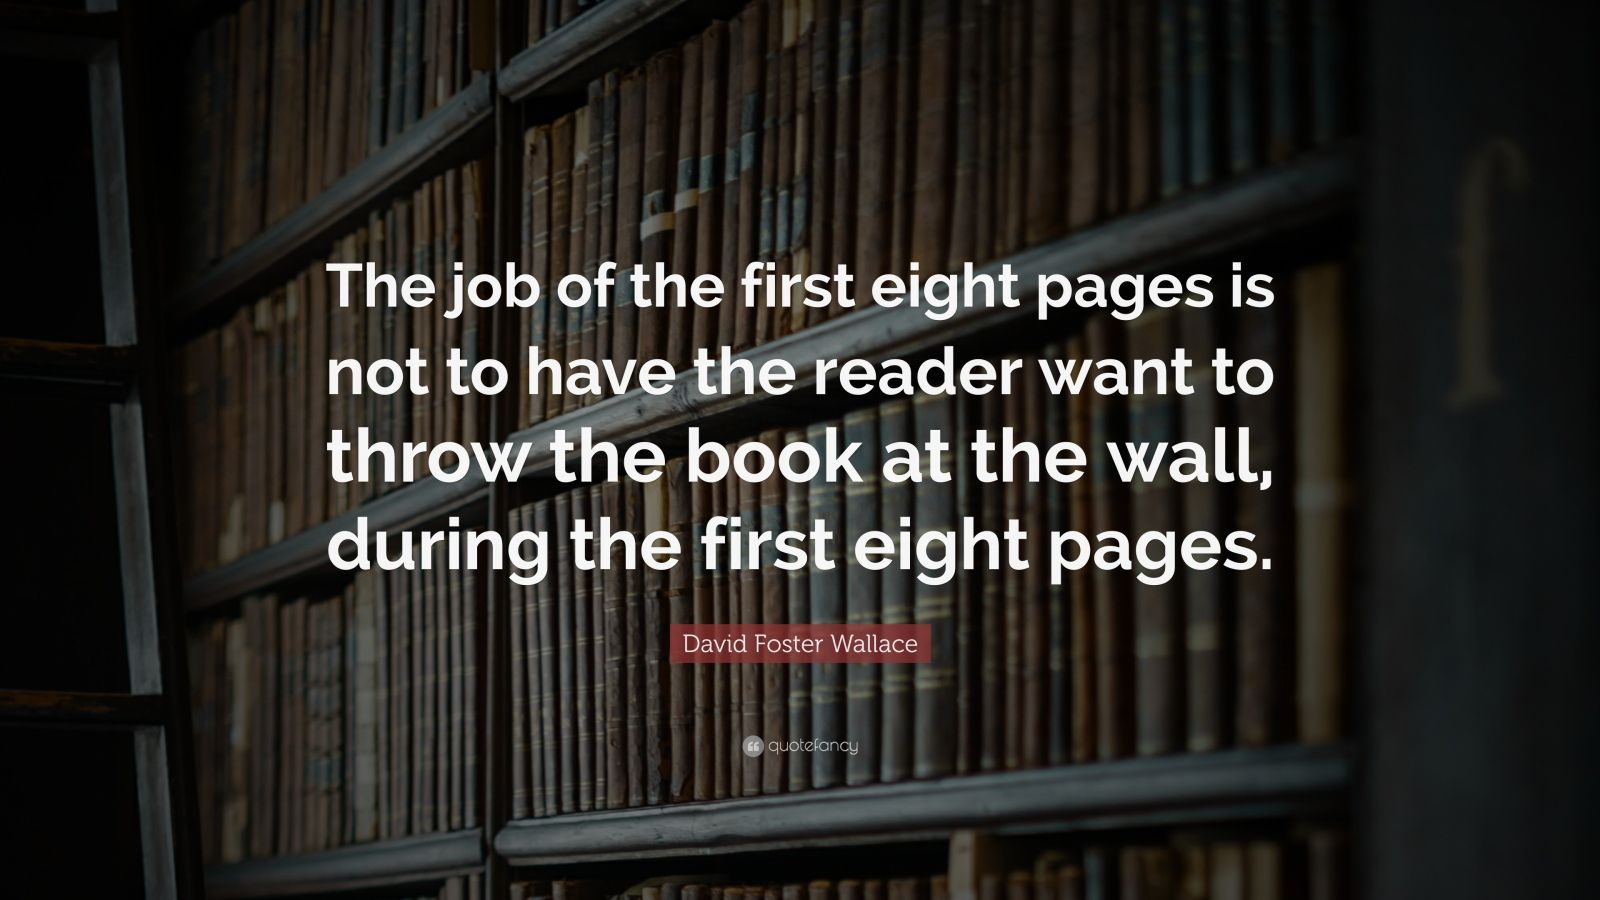 David Foster Wallace Quotes Wallpaper David Foster Wallace Quote The Job Of The First Eight